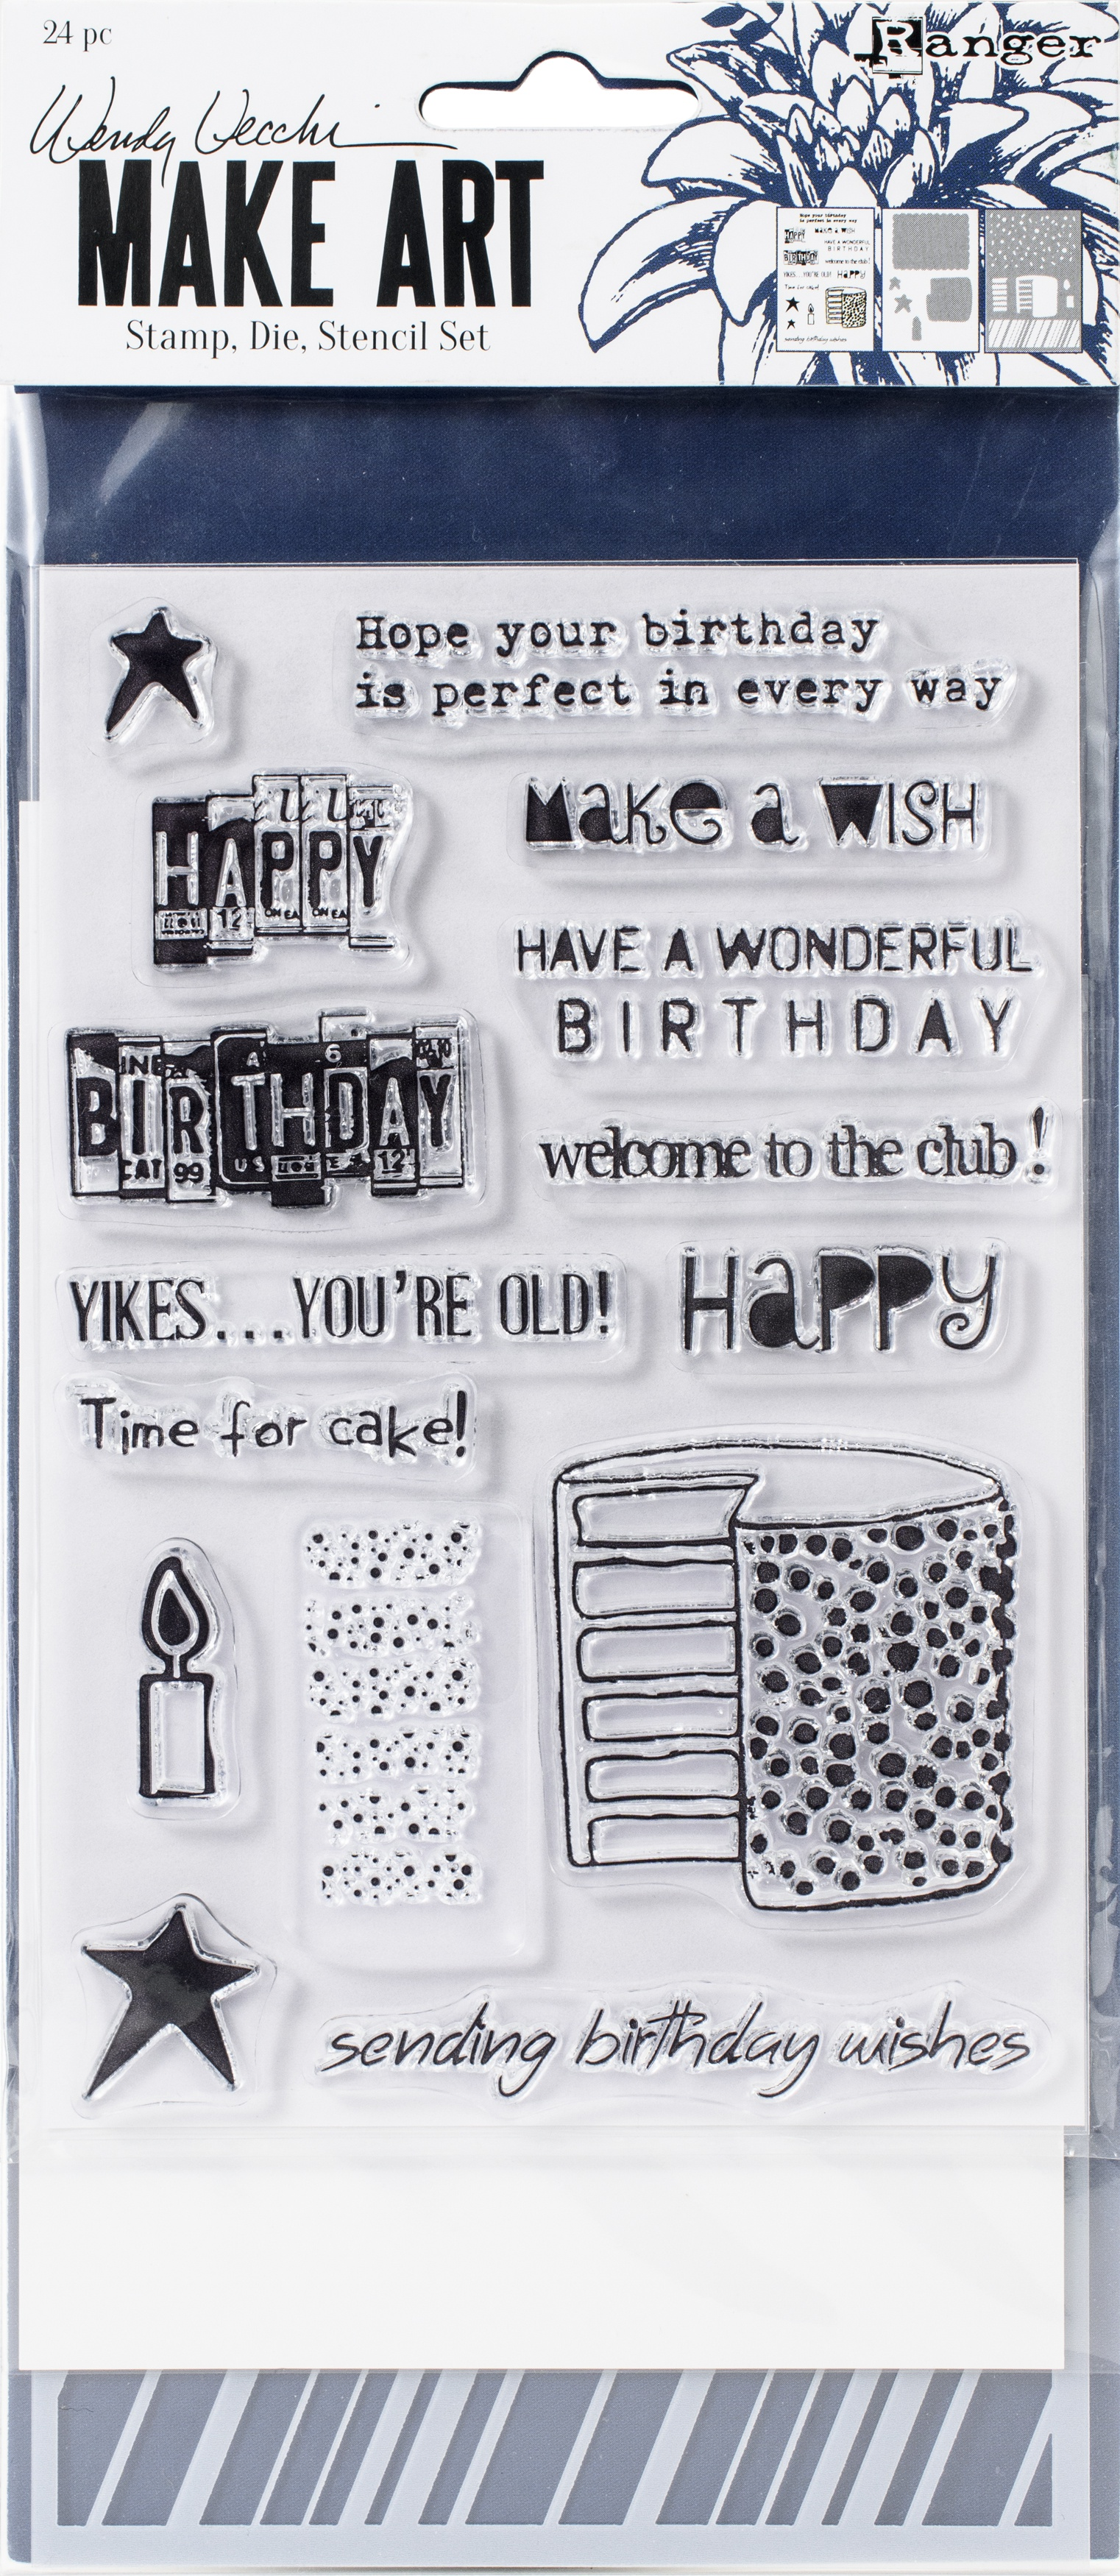 PREORDER Wendy Vecchi Make Art Stamp, Die & Stencil Set-Birthday Bash